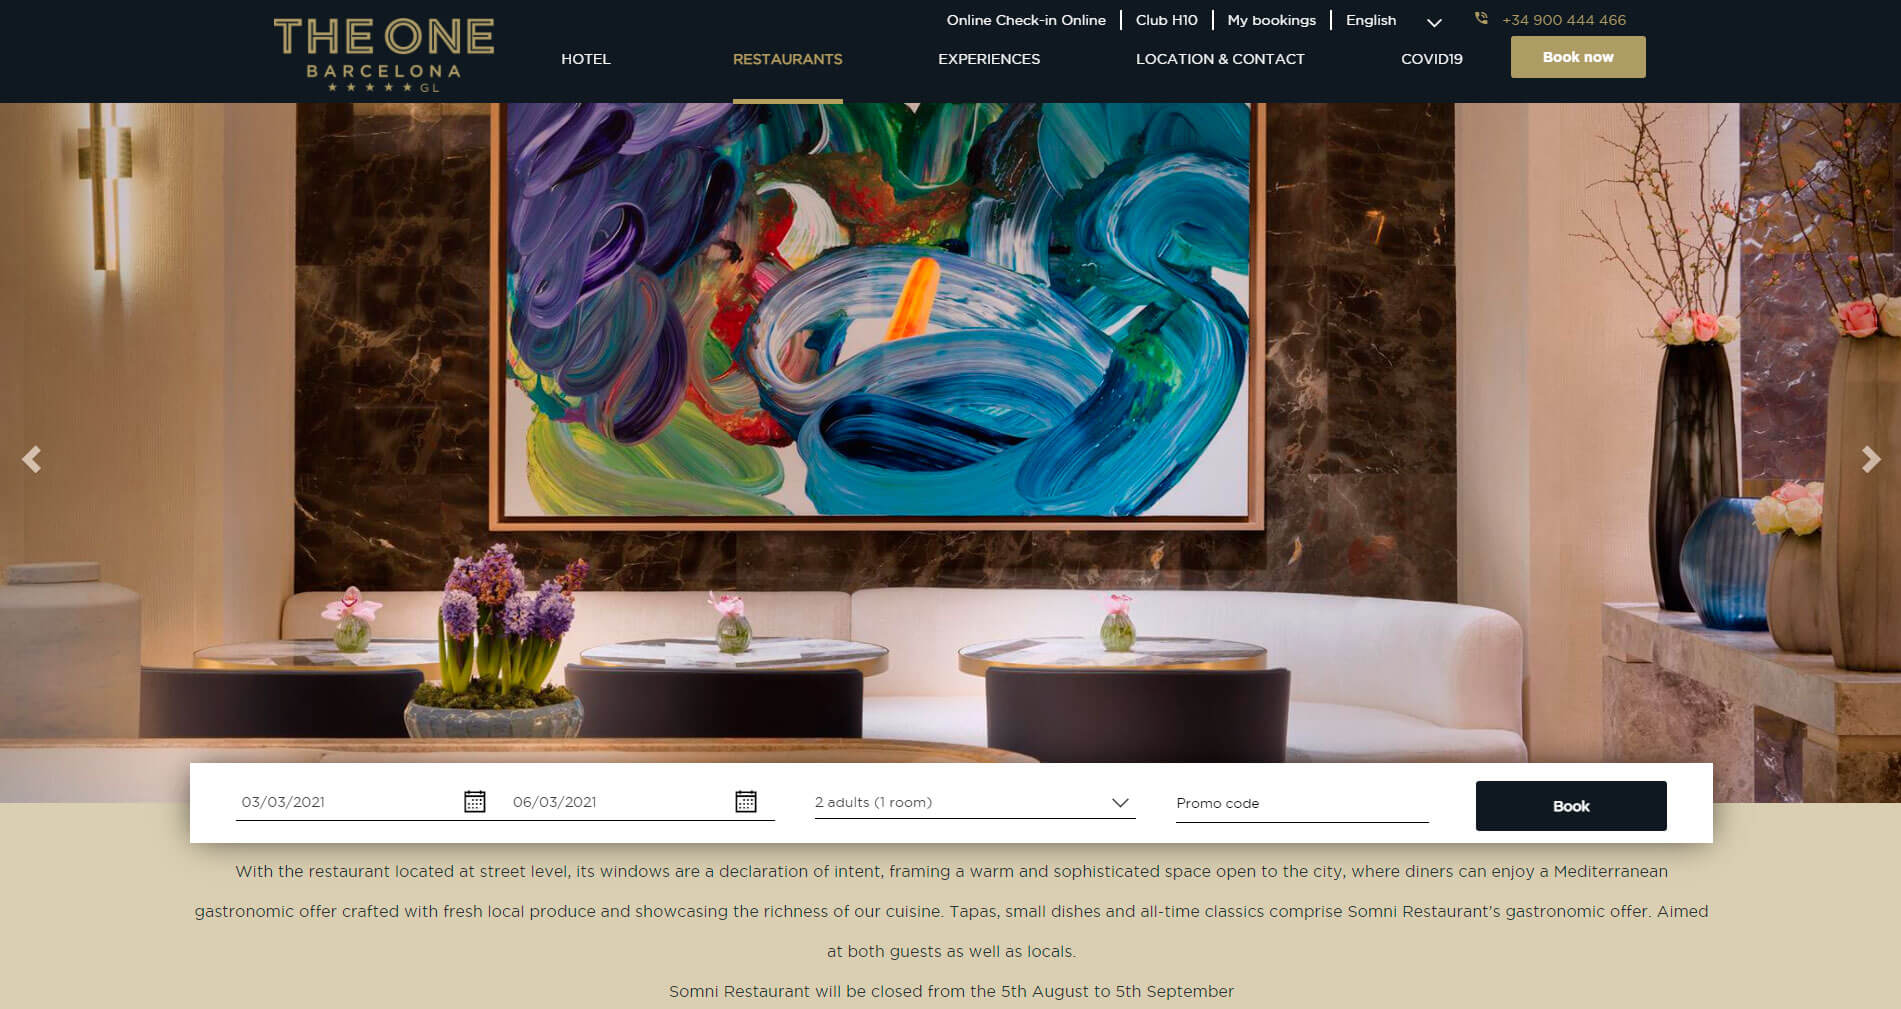 Restaurants Page within The One Barcelona Hotels